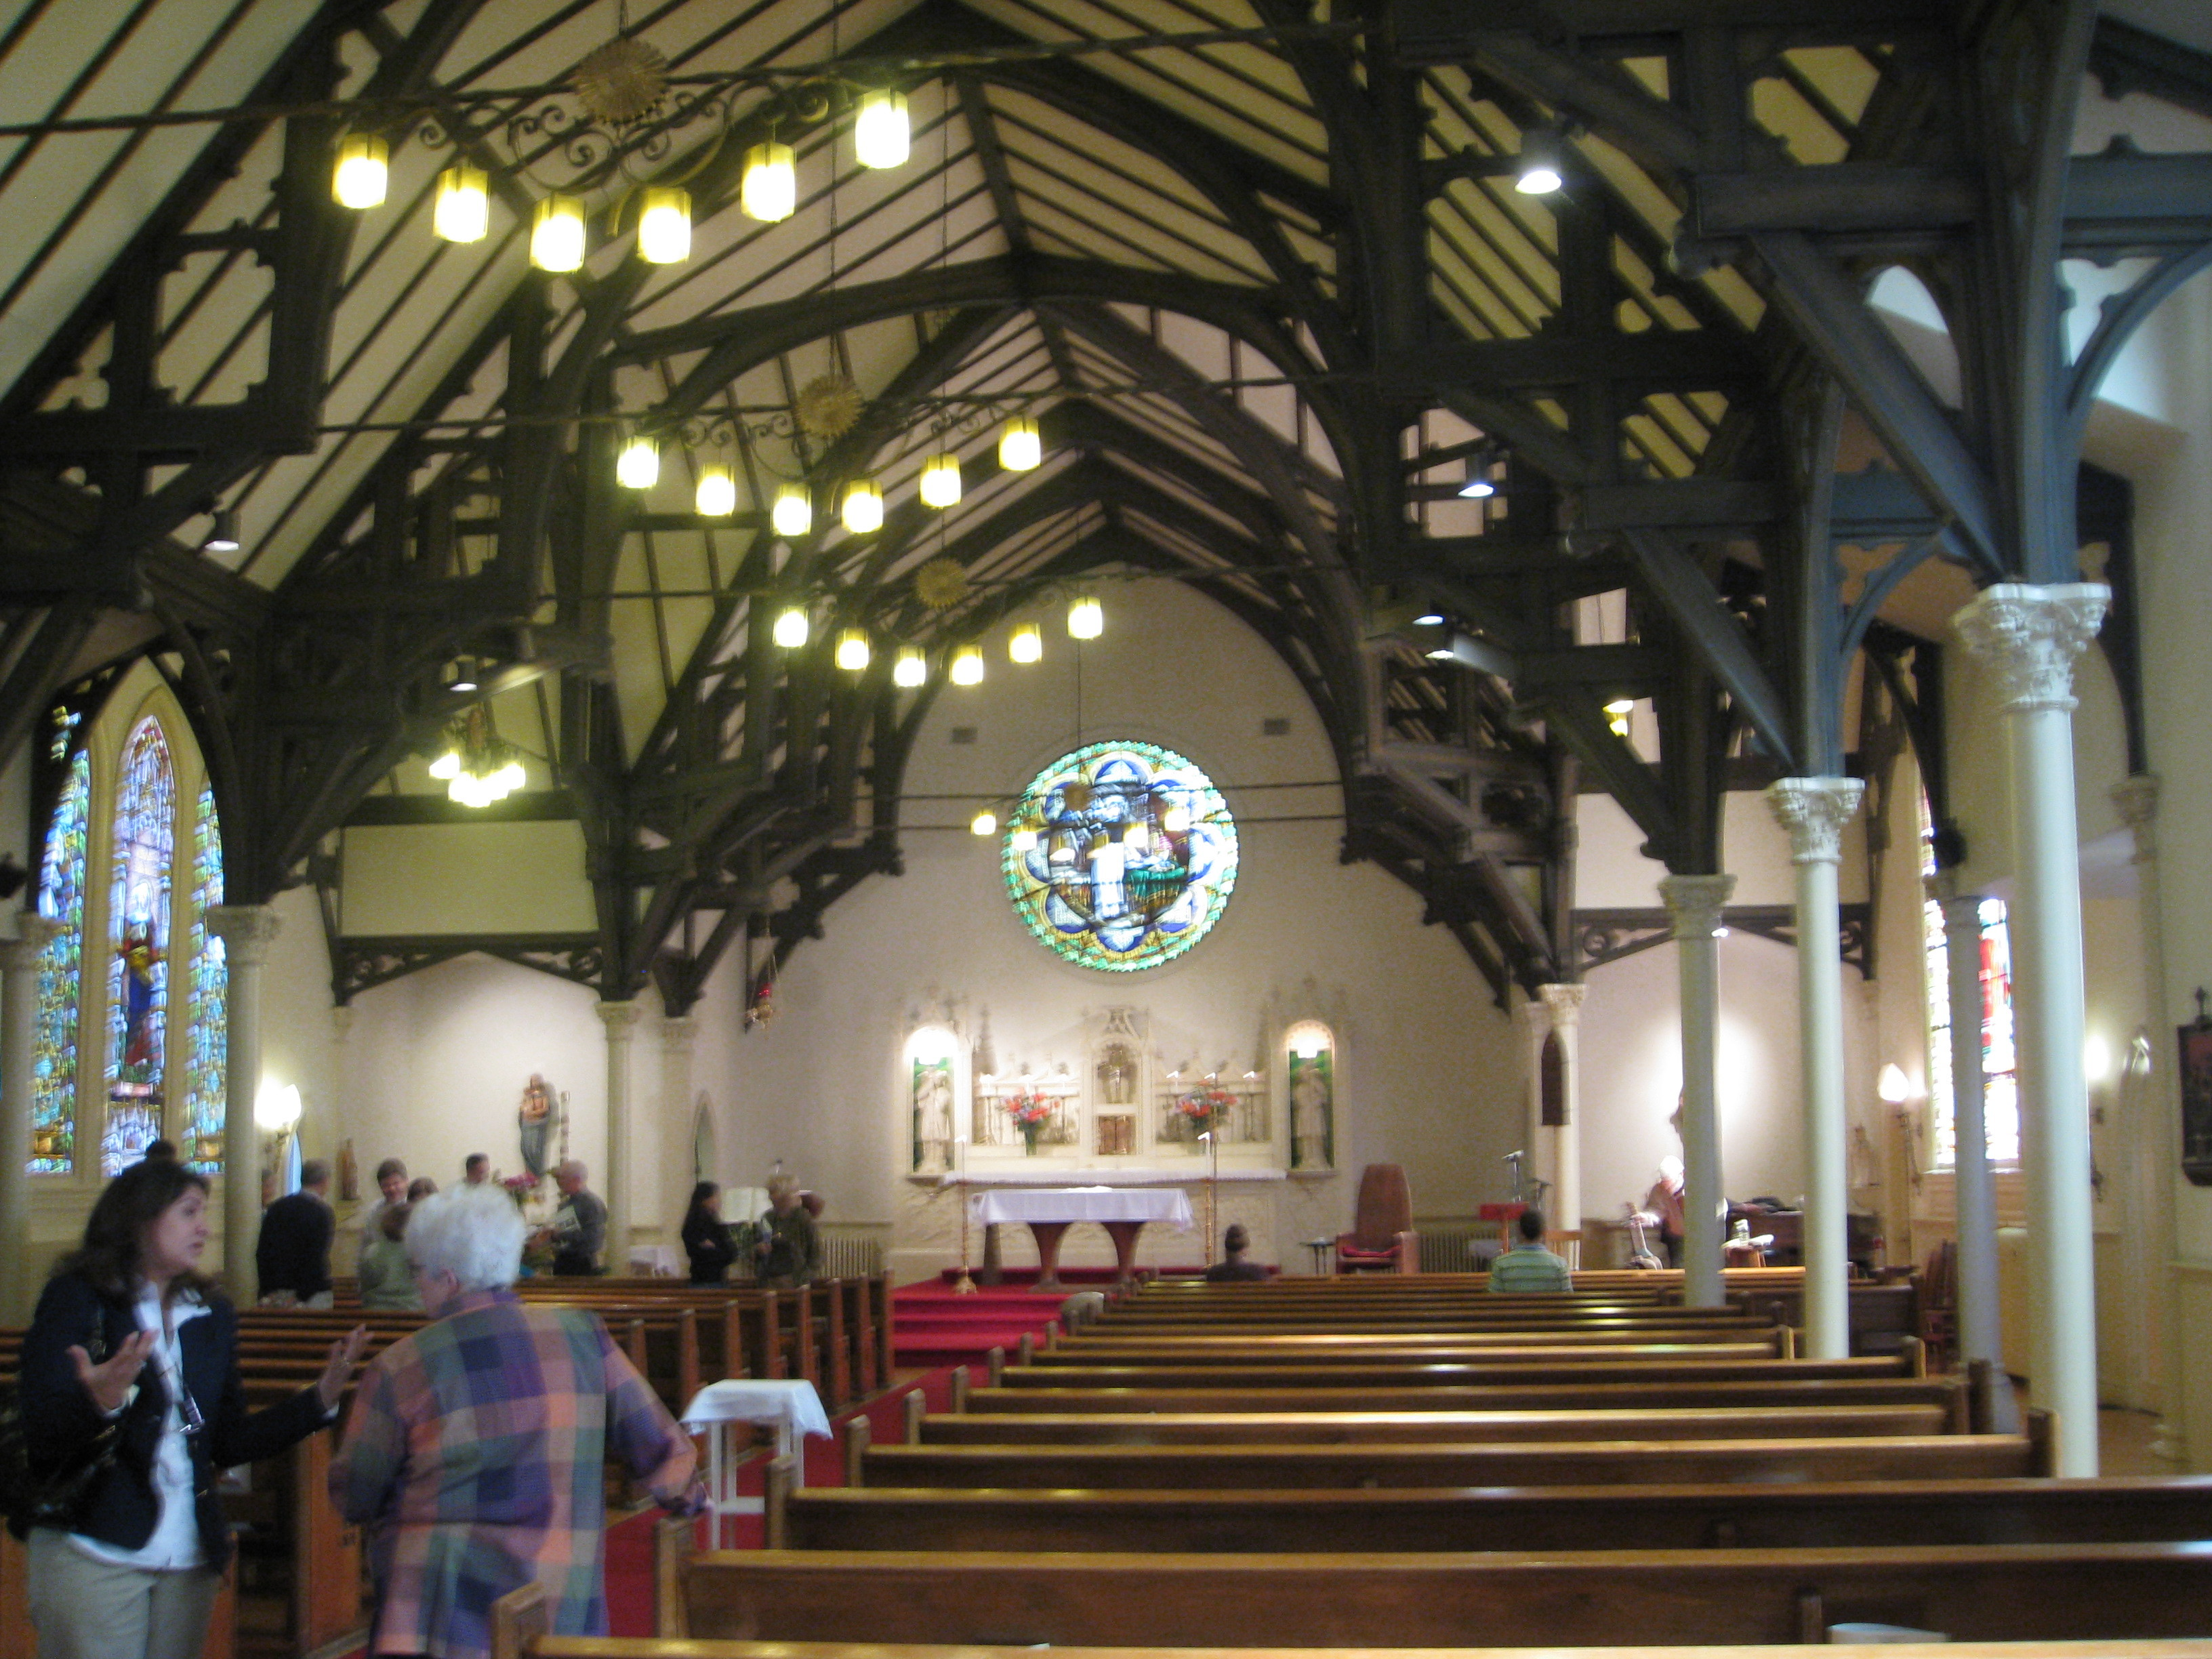 Church, Thomas, Aquinas, Interior_st